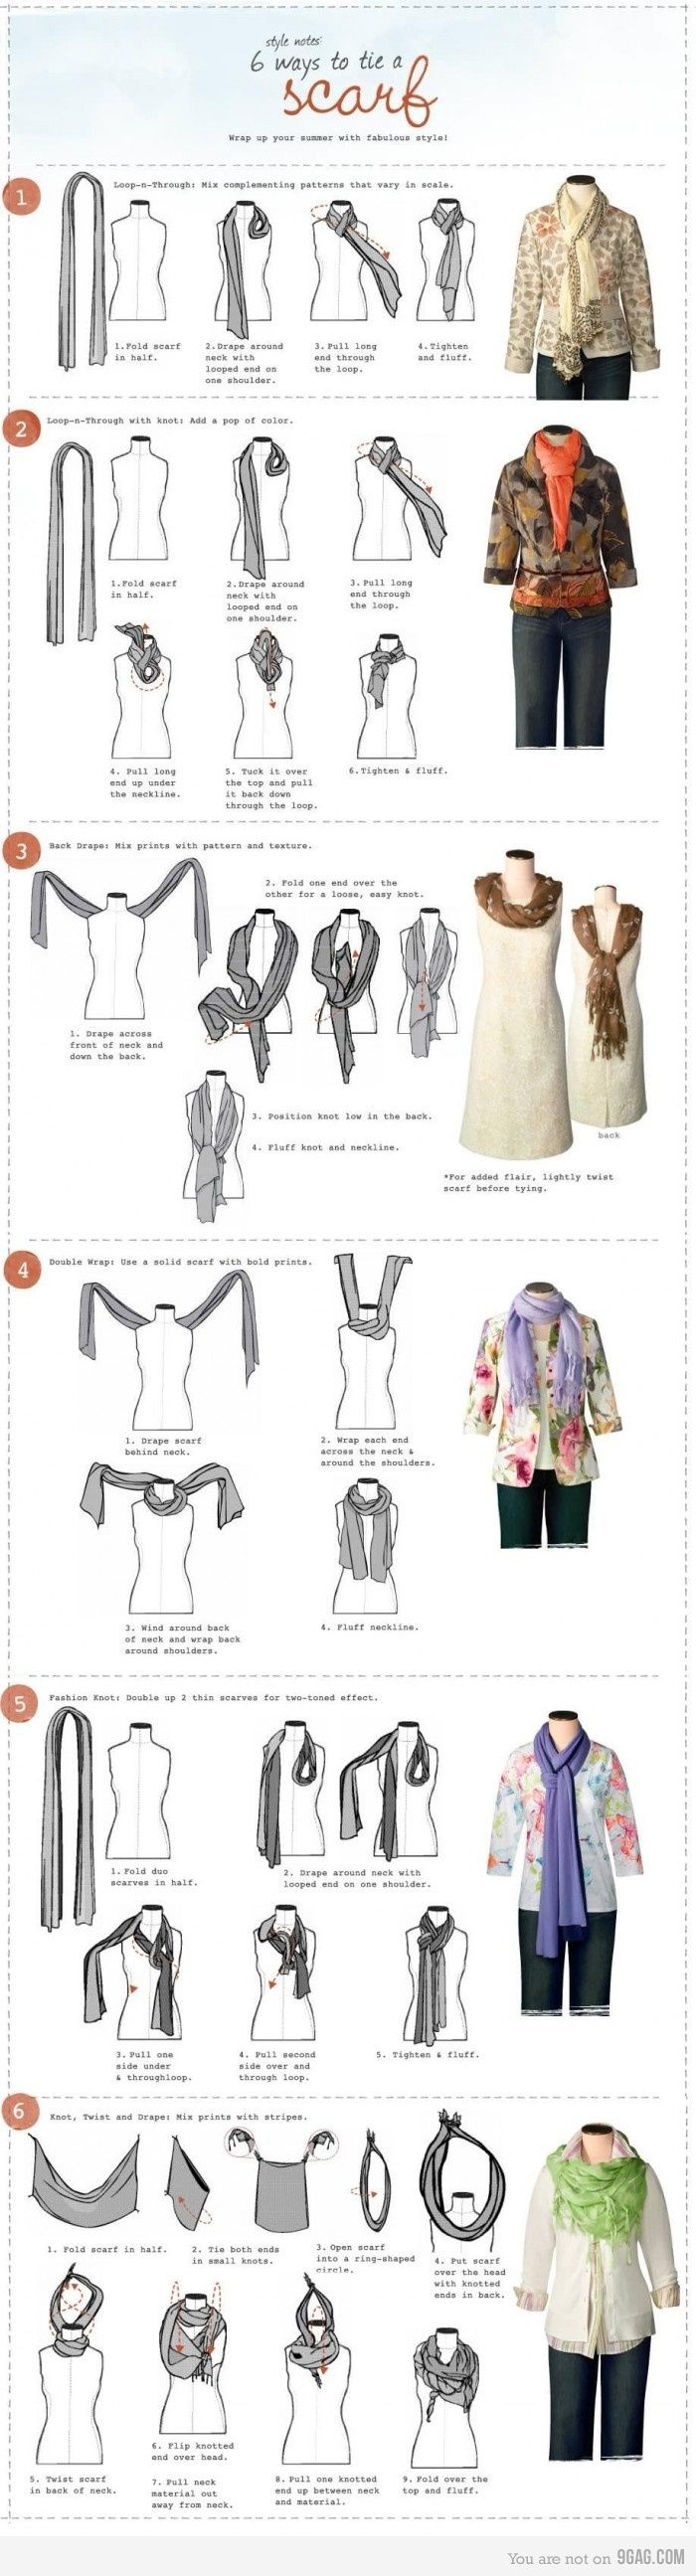 Scarf tying made easy